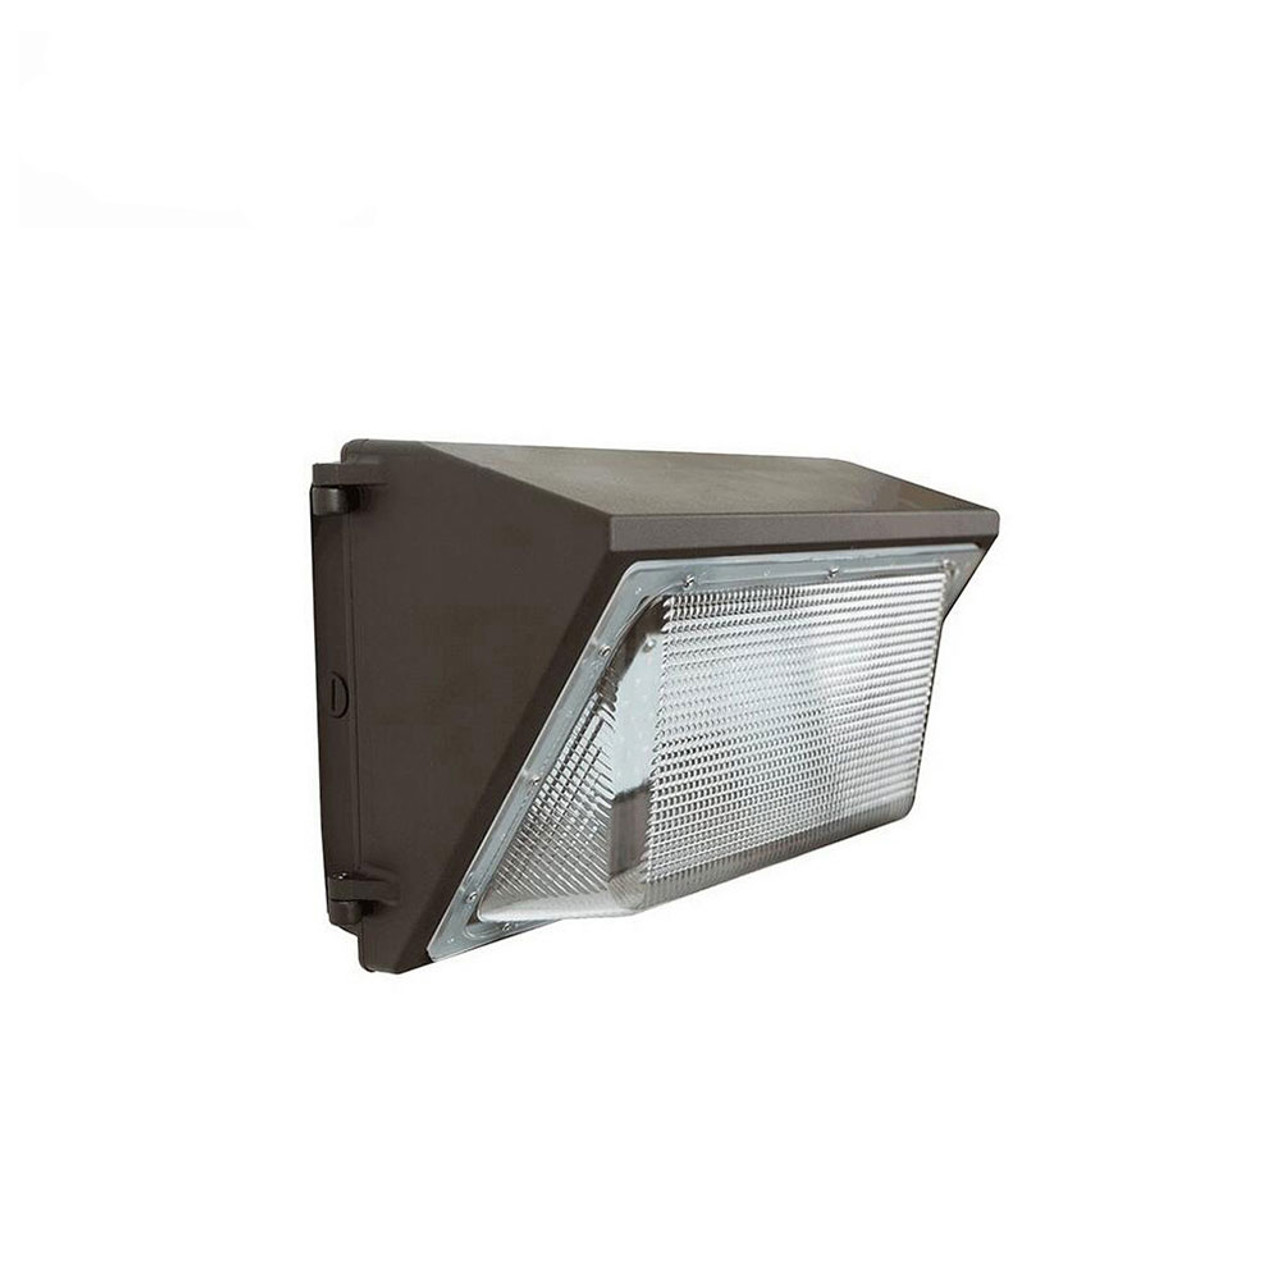 LED Wall Pack, 25 Watt, 3000 lumen, 5000 Kelvin, 100-277 volt, UL and DLC Listed